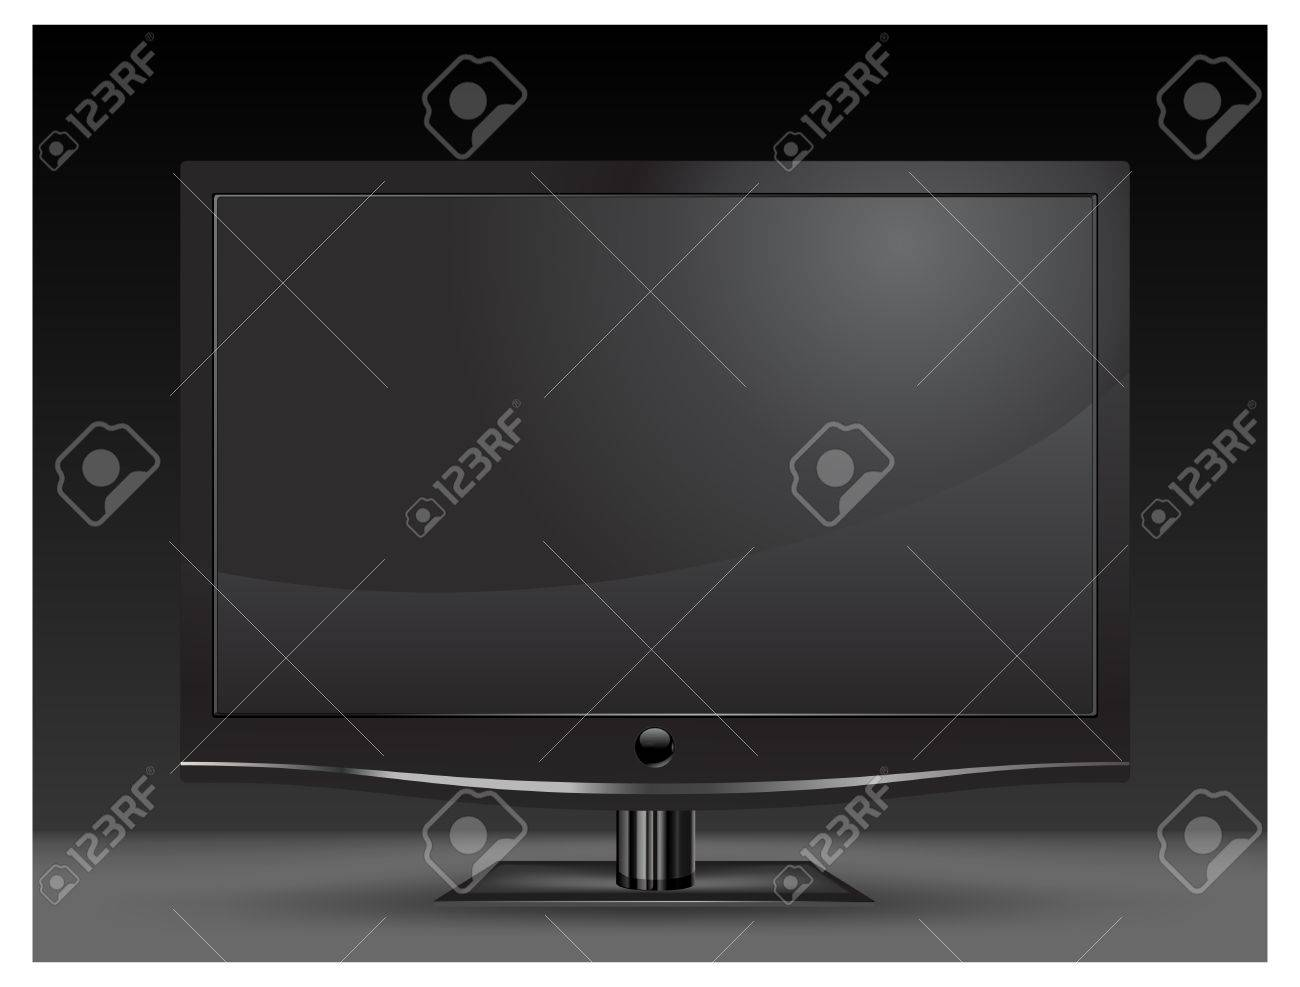 Plasma lcd tv with remote control on white background, illustration Stock Vector - 7020155